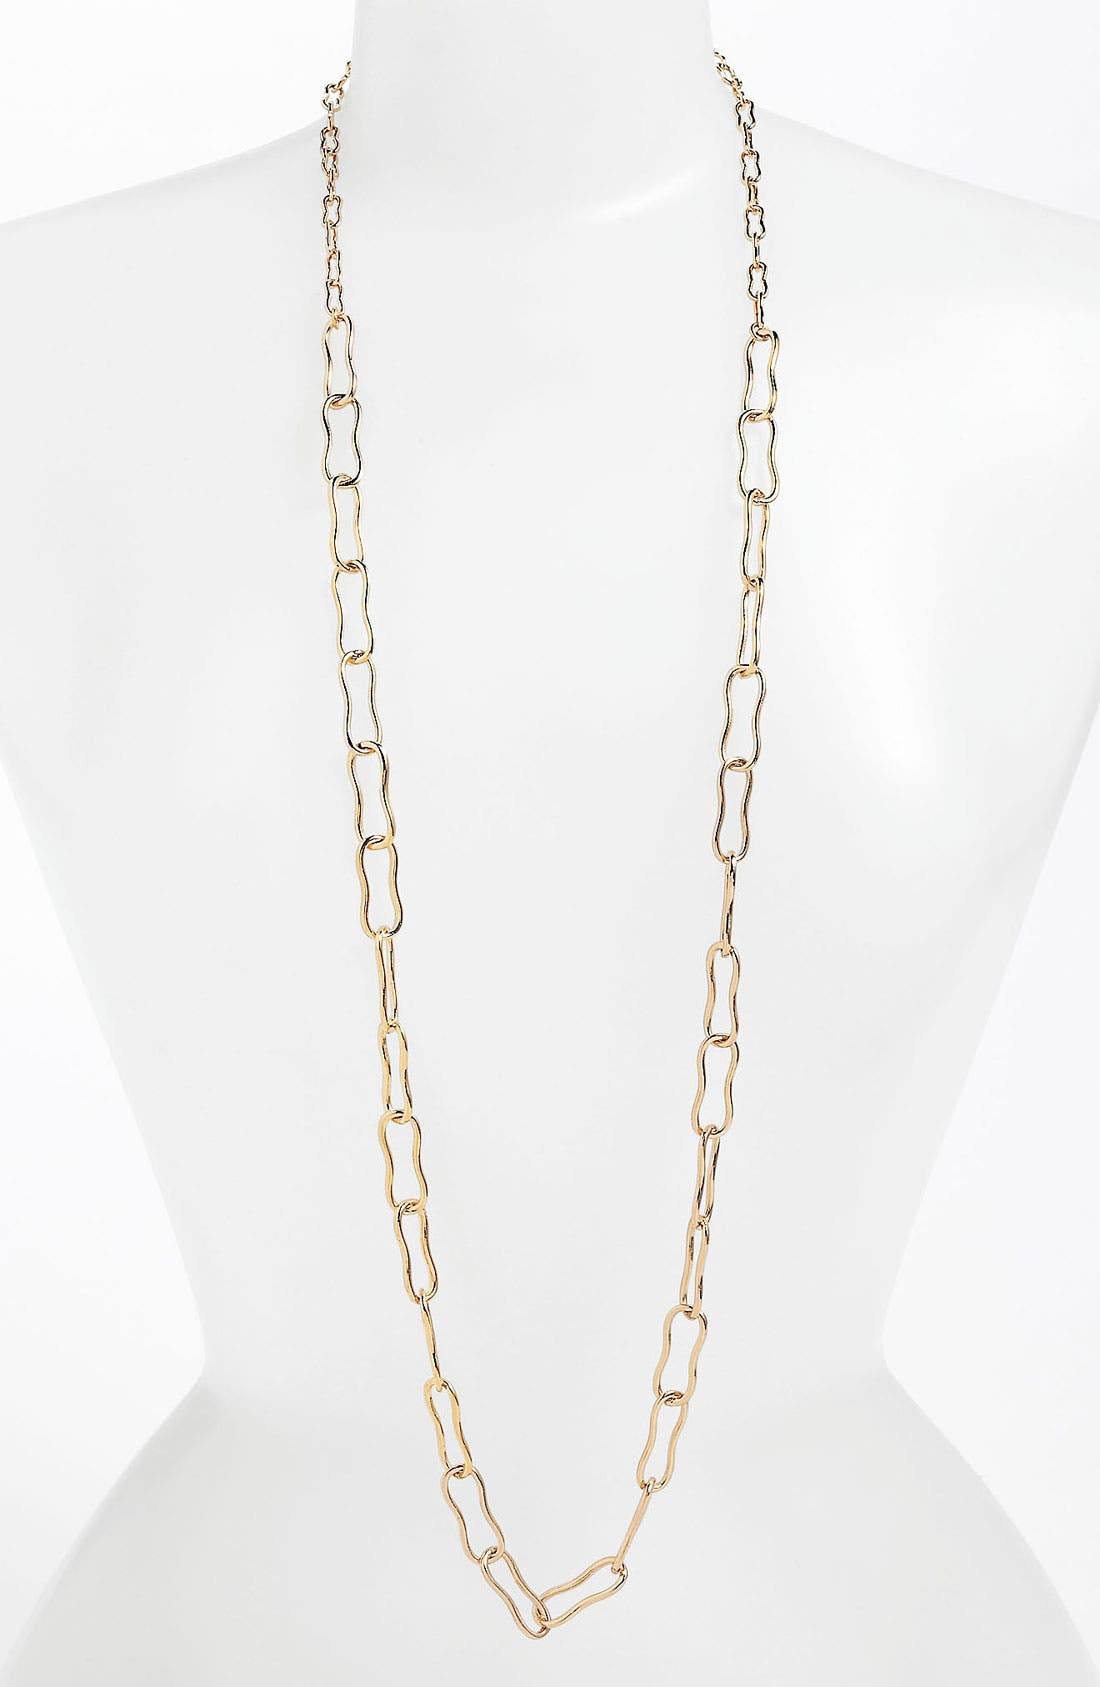 Alternate Image 1 Selected - Kelly Wearstler Bent Link Chain Necklace